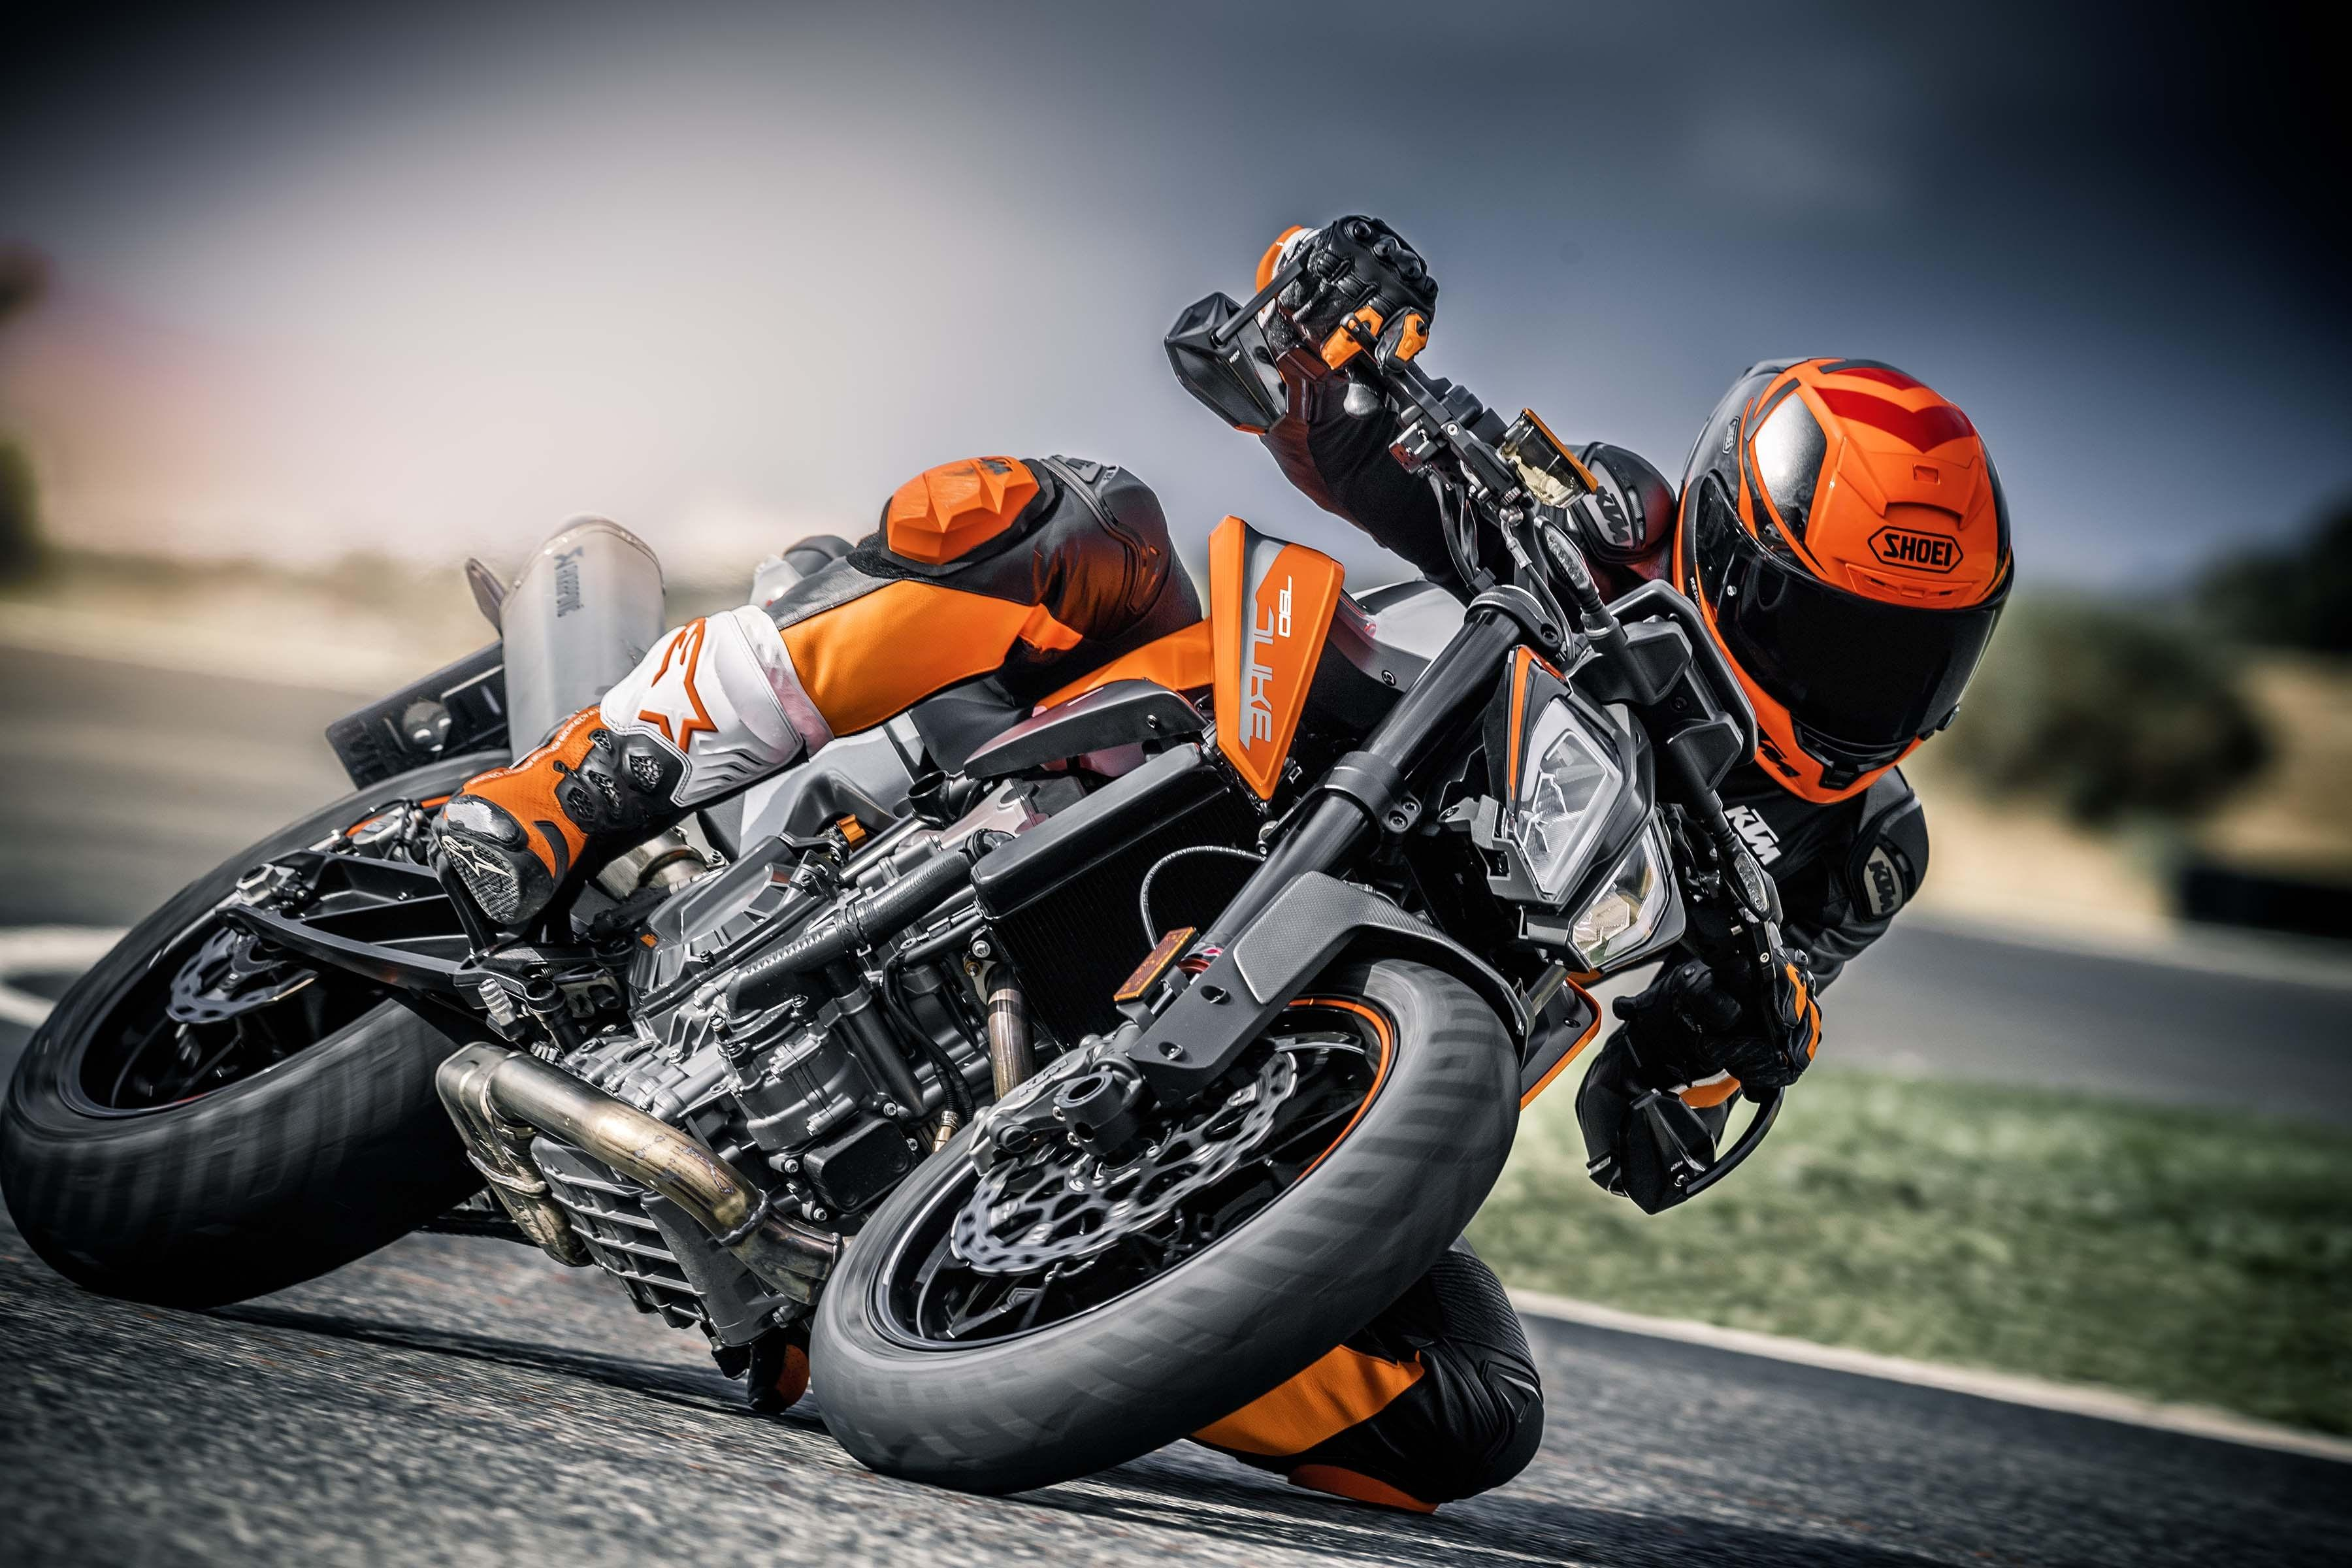 Wallpaper KTM 790 Duke, 2018, 4K, Automotive / Bikes, #10960